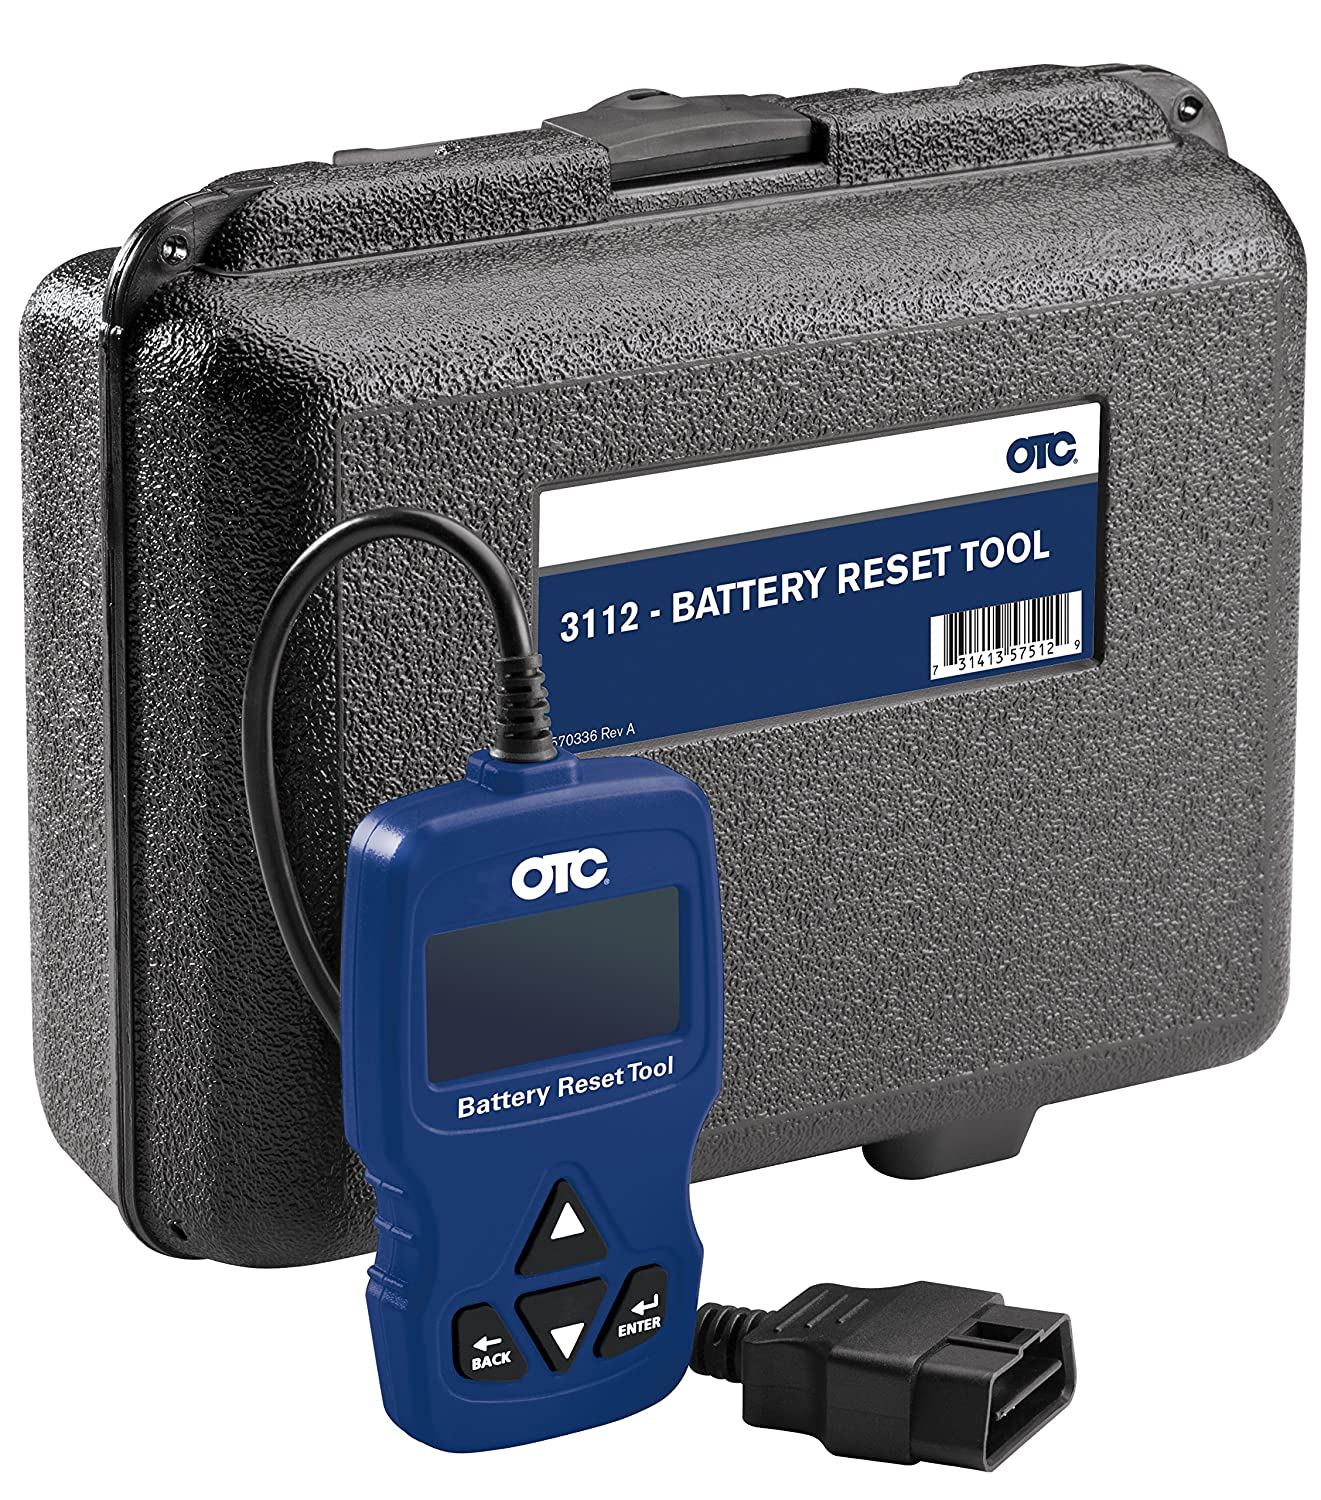 OTC Tools 3112 Battery Reset Tool